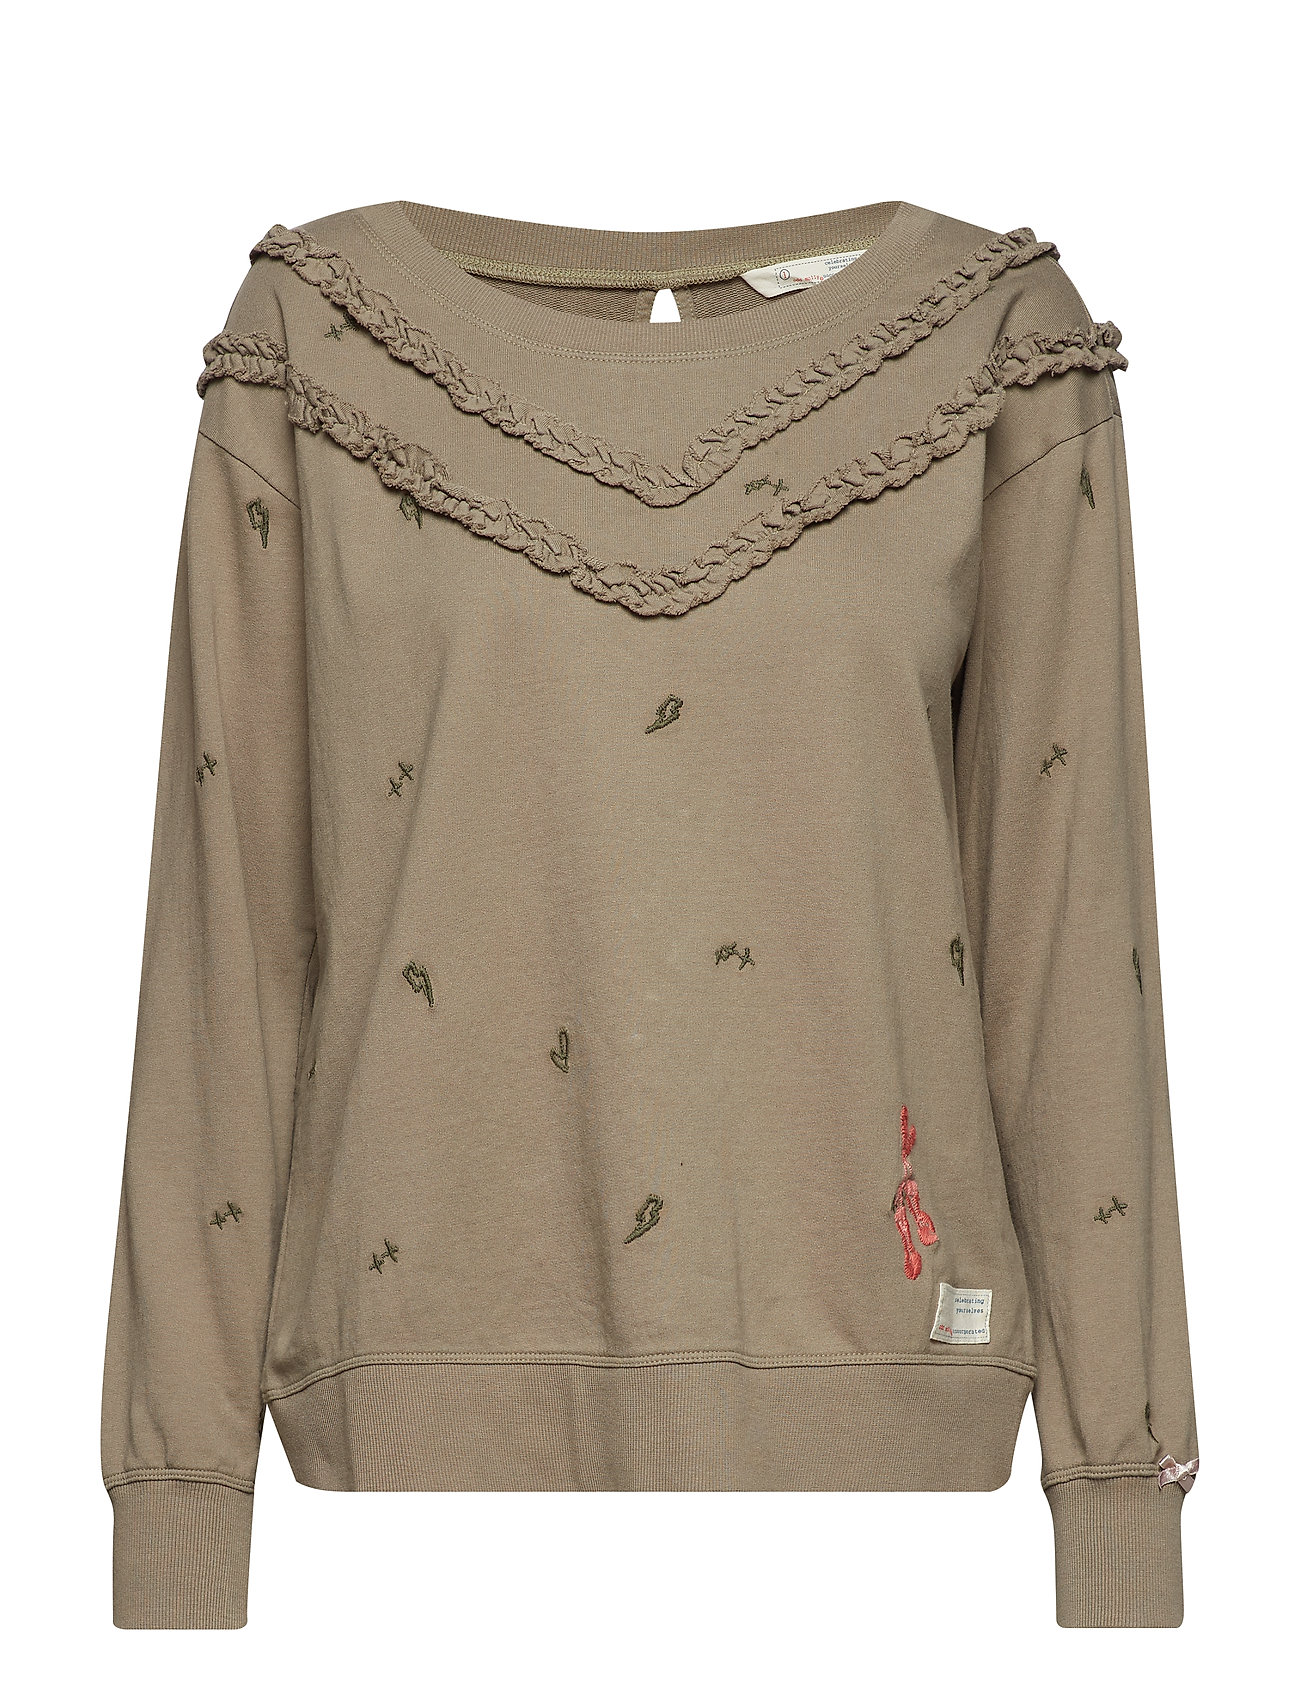 ODD MOLLY phase it sweater - FADED CARGO